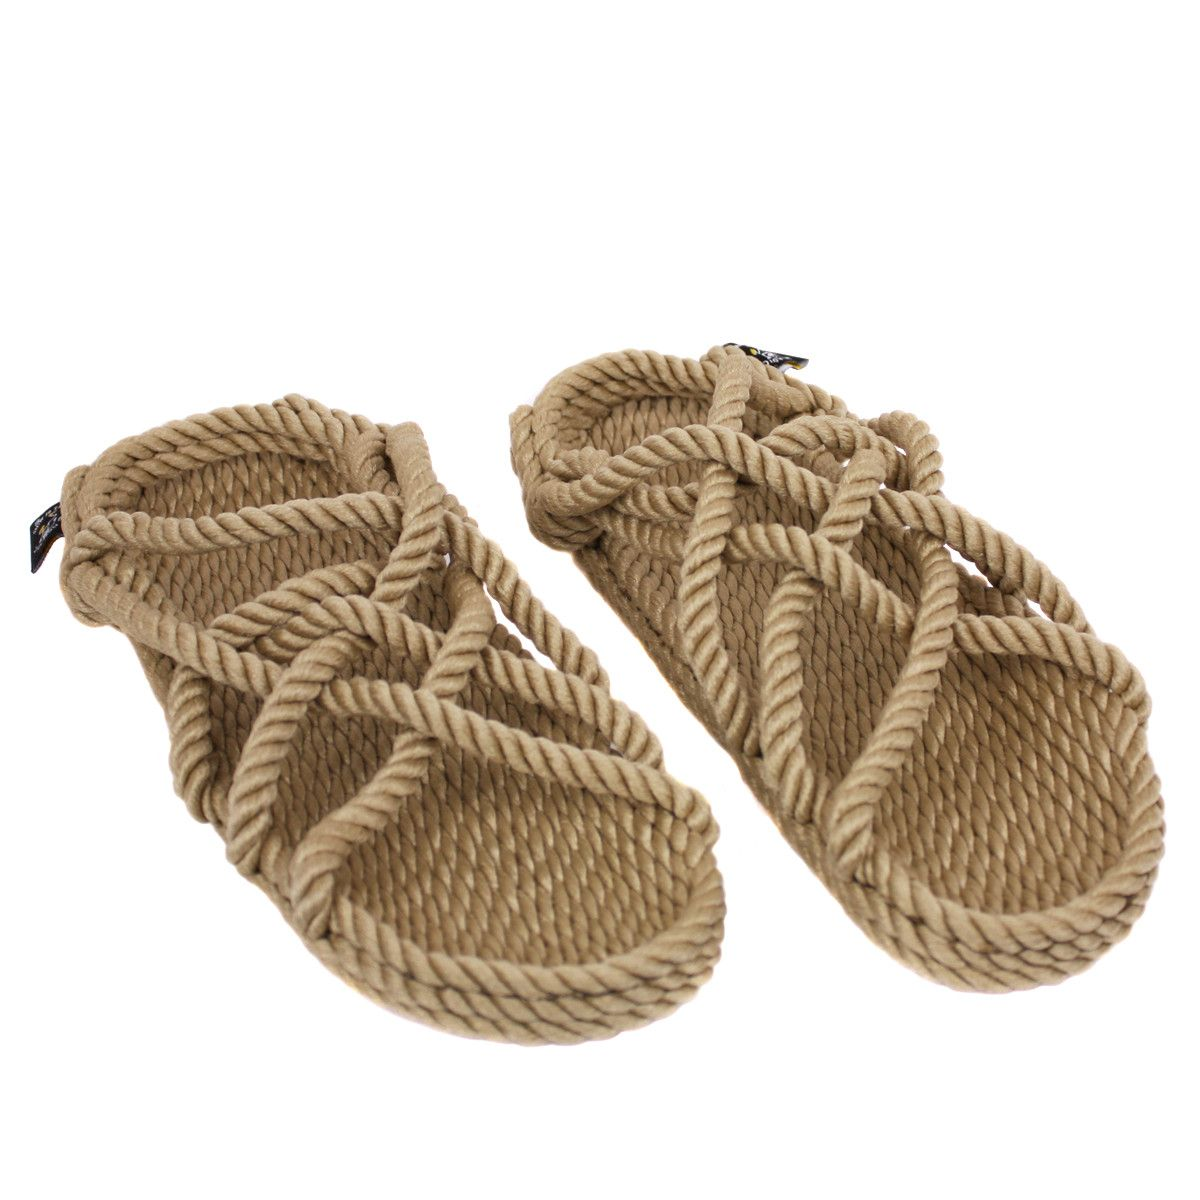 b18c46181 Fair Trade Rope Sandals for Men and Women from Come Together Trading  Company.